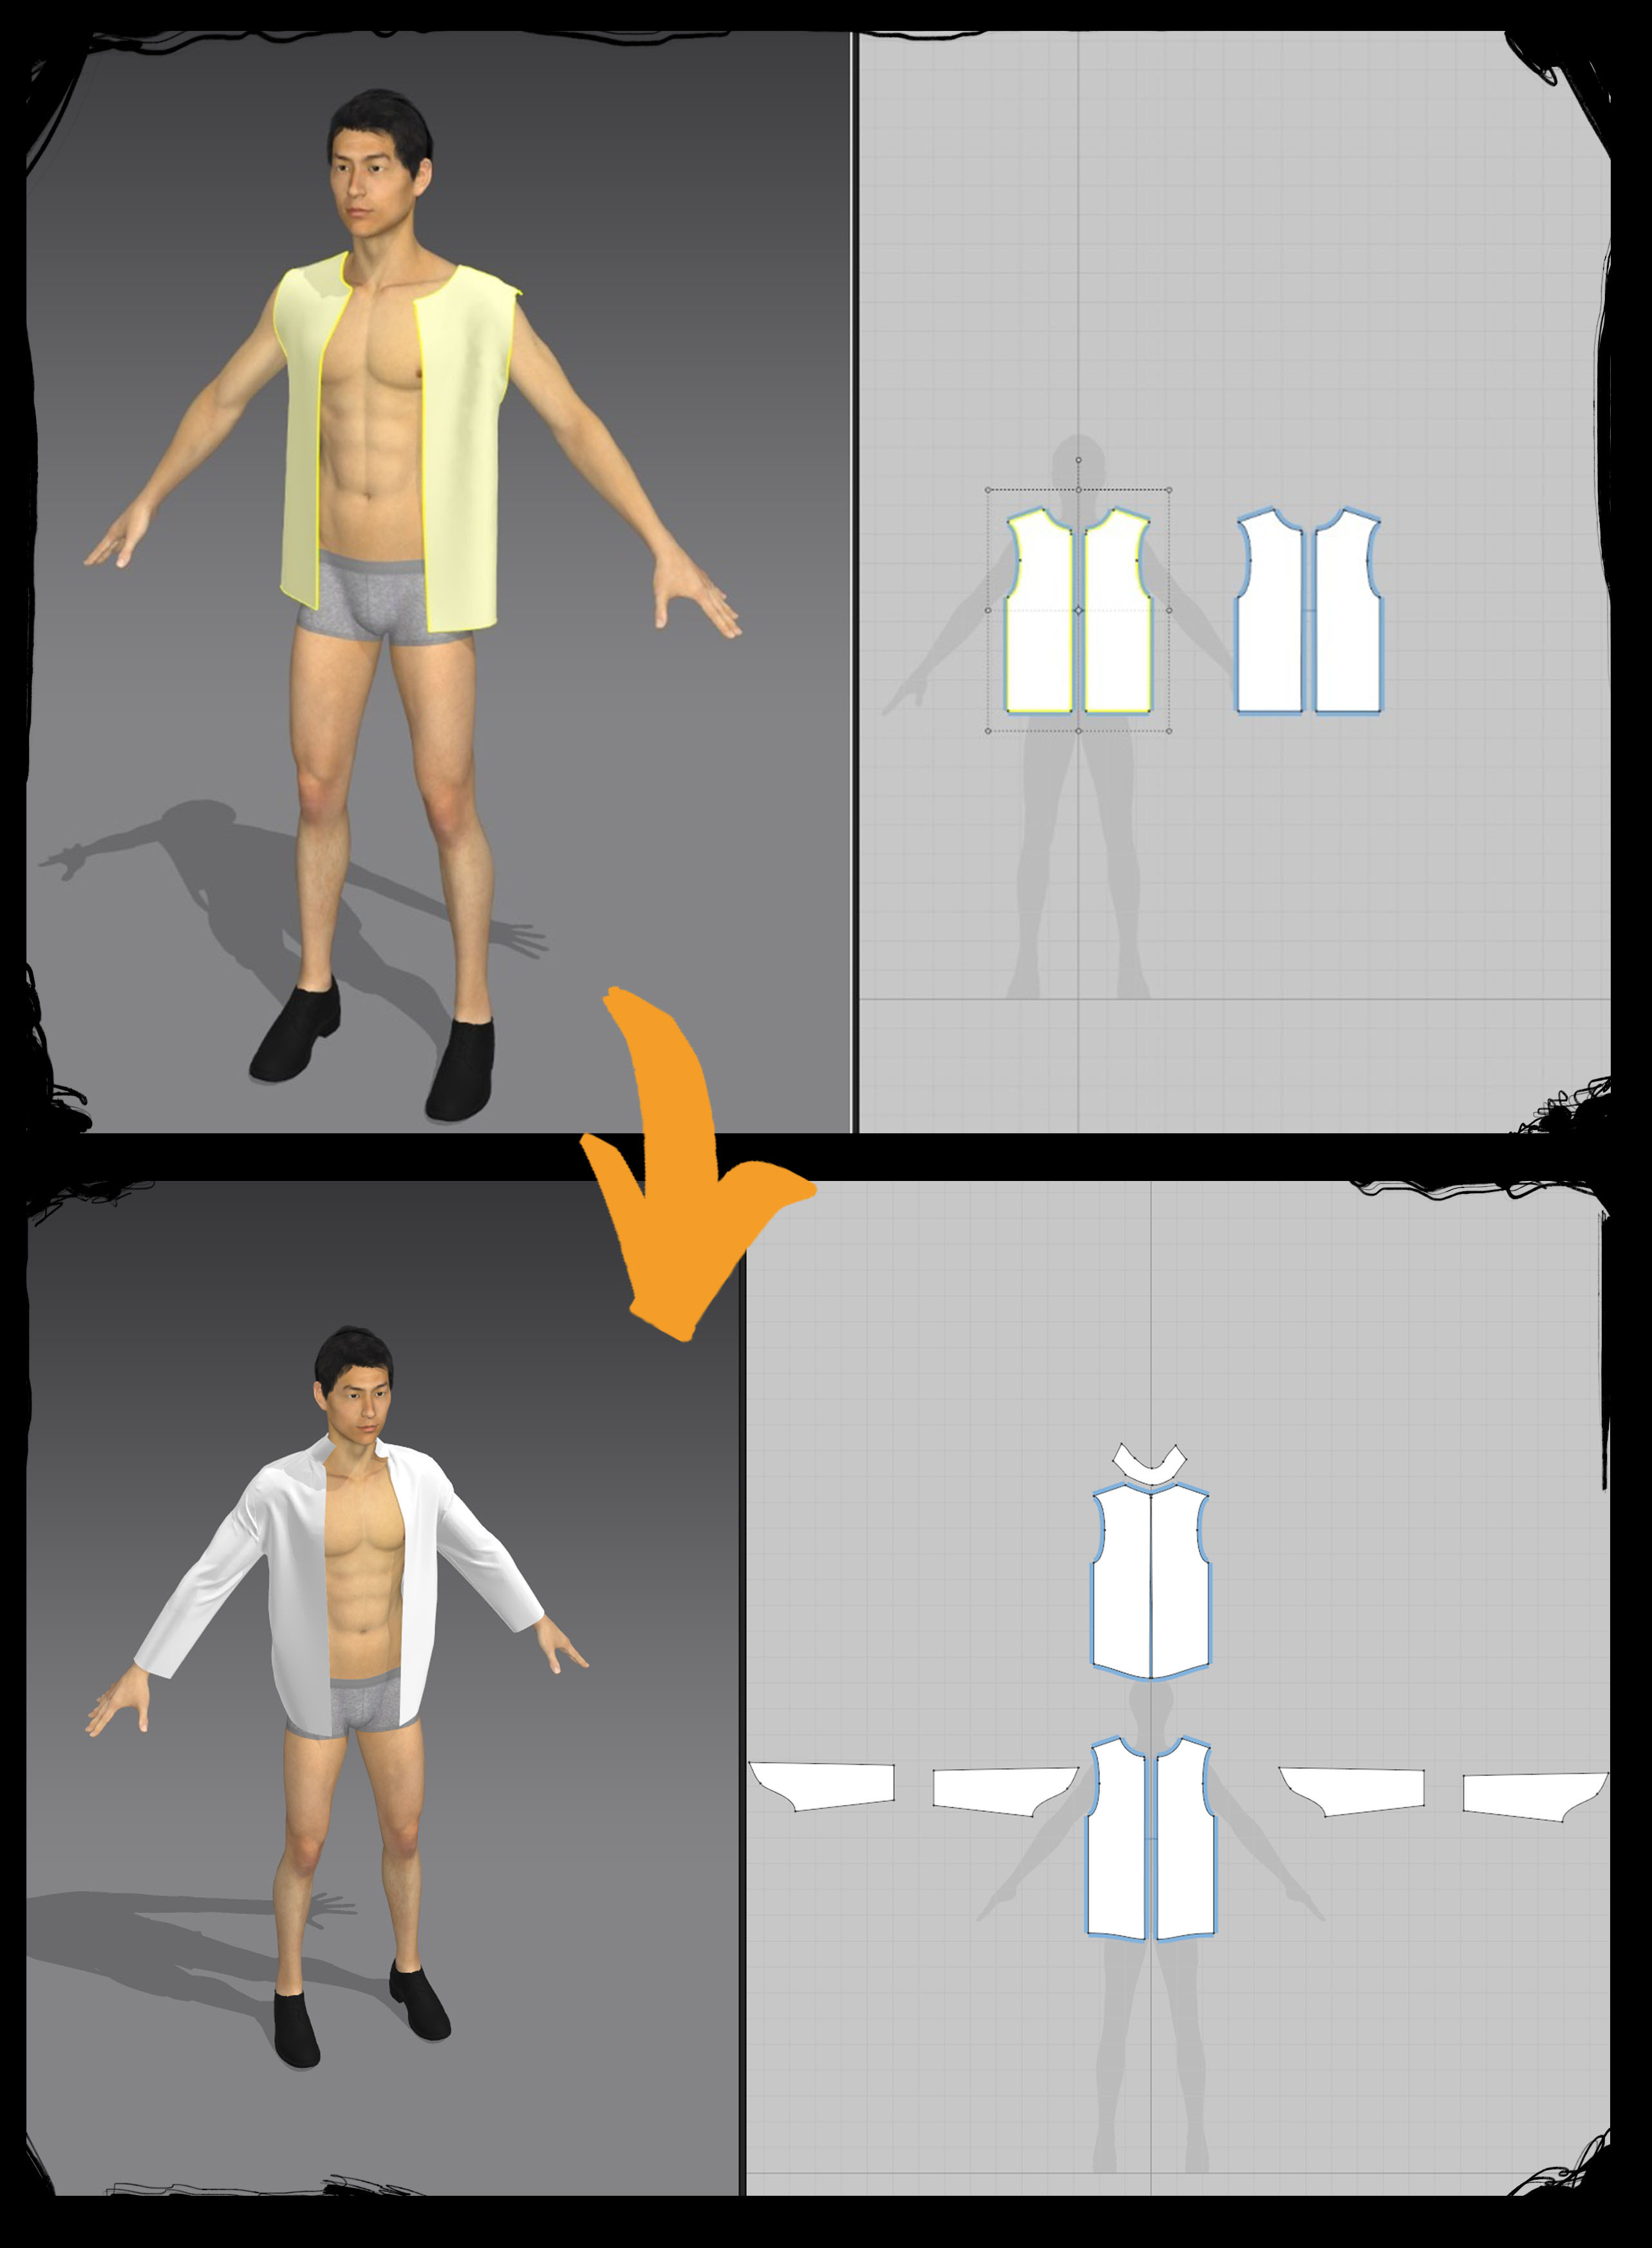 Shirt creation from scratch before simulation